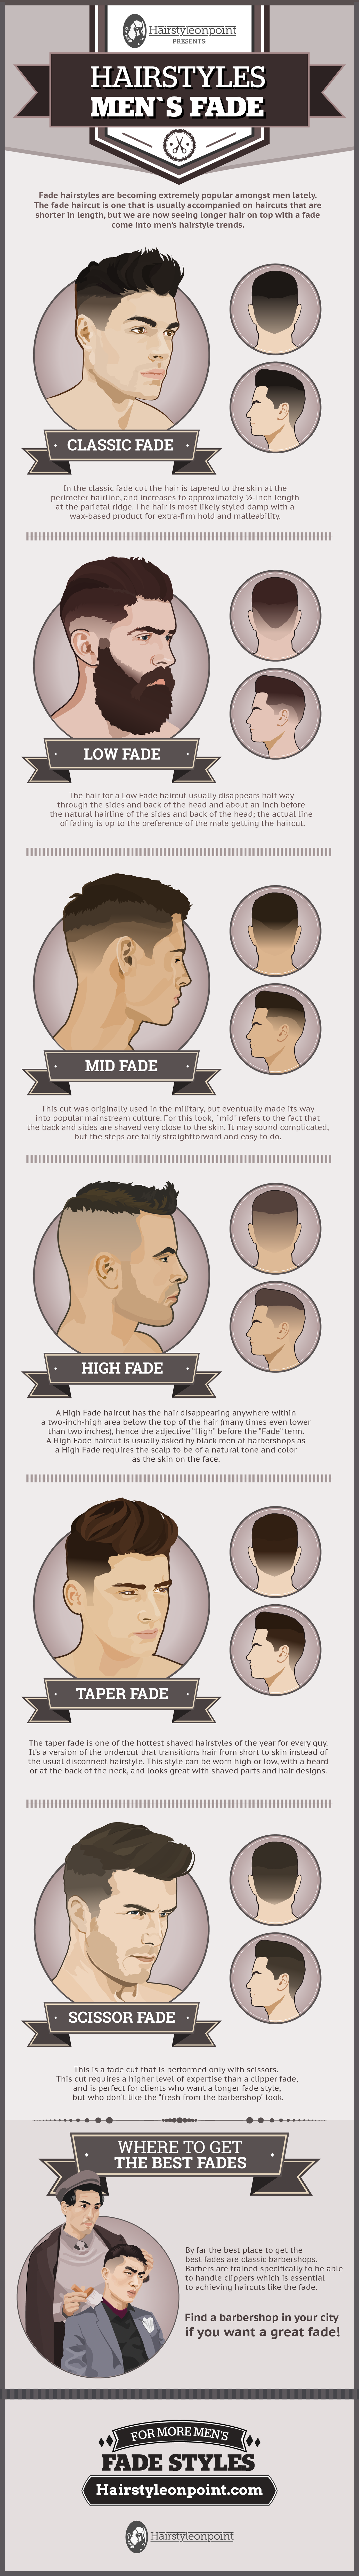 Menus hairstyles a simple guide to popular and modern fades